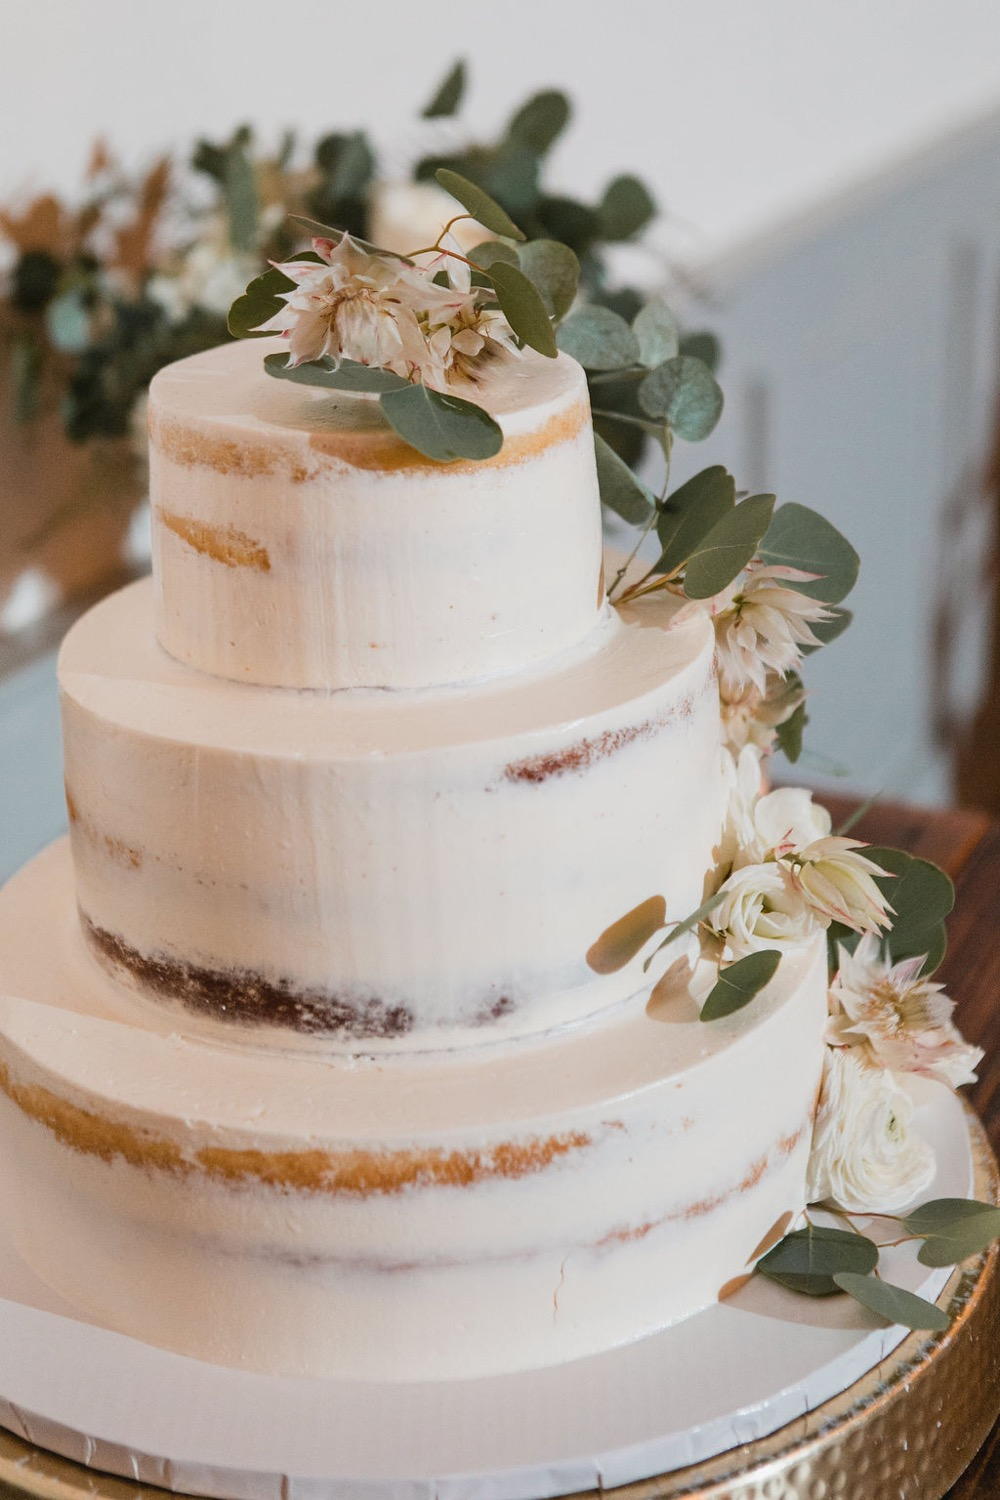 A naked wedding cake in chocolate and vanilla.